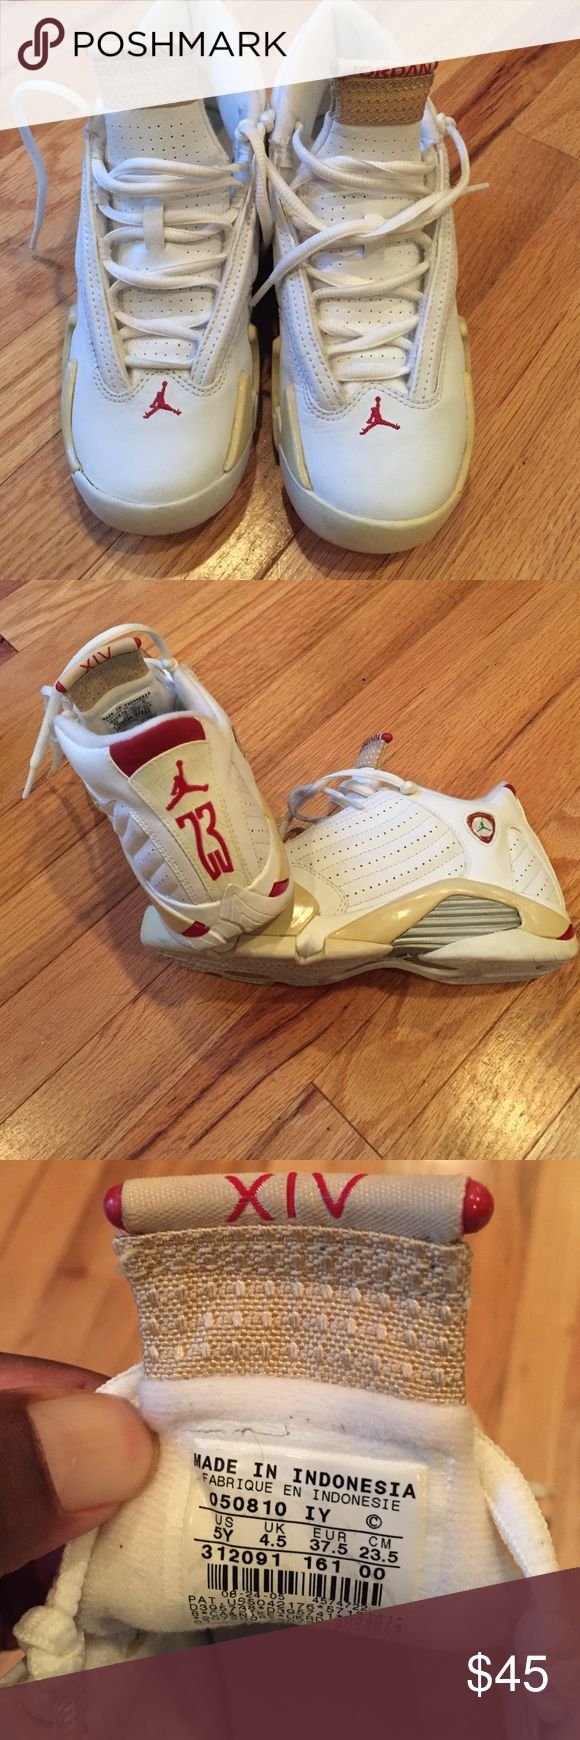 Jordan XIV - 5Y - Tan White Red 5 Youth Jordan XIV - Never Word - Only On Mannequin Display - Can Be Women's Or Kids Jordan Shoes Sneakers